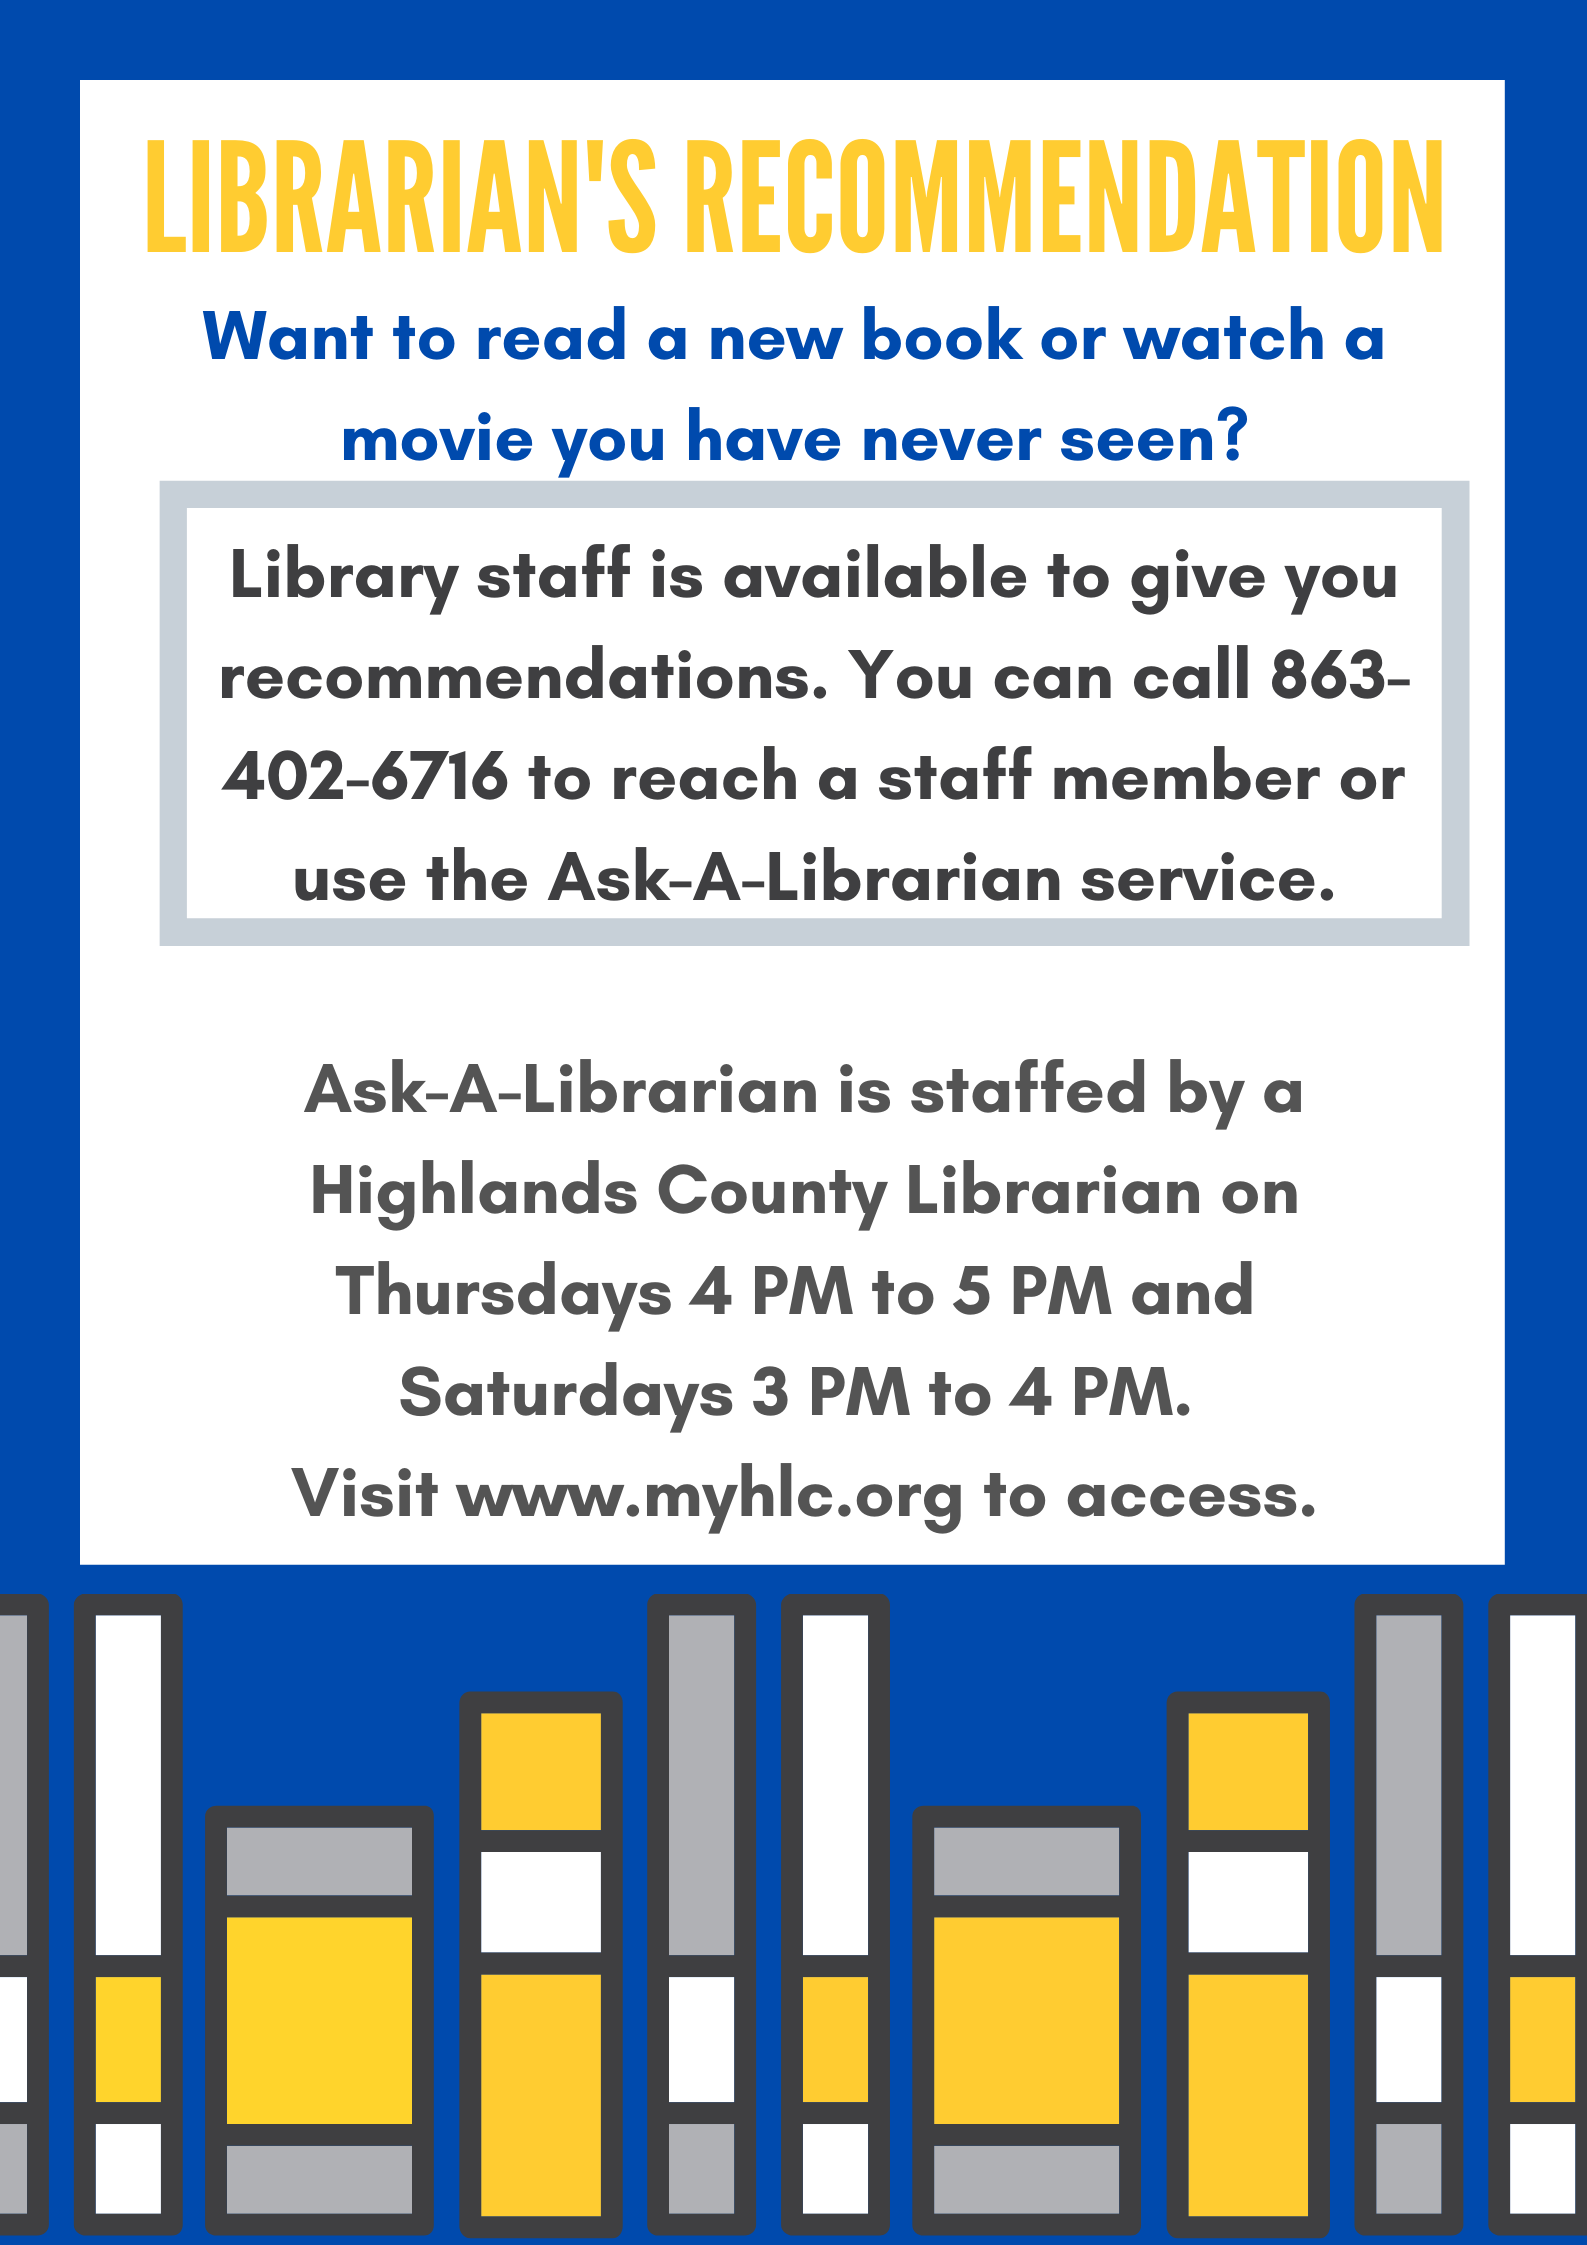 Want something new to read? Stuck in a rut, watching the same shows and movies over and over again? Highlands County Public Library staff are here to help. Tell us what you like, and we can recommend some of our favorite books, movies, and tv shows. Call 863-402-6716 or visit www.myhlc.org and click on Ask A Librarian.